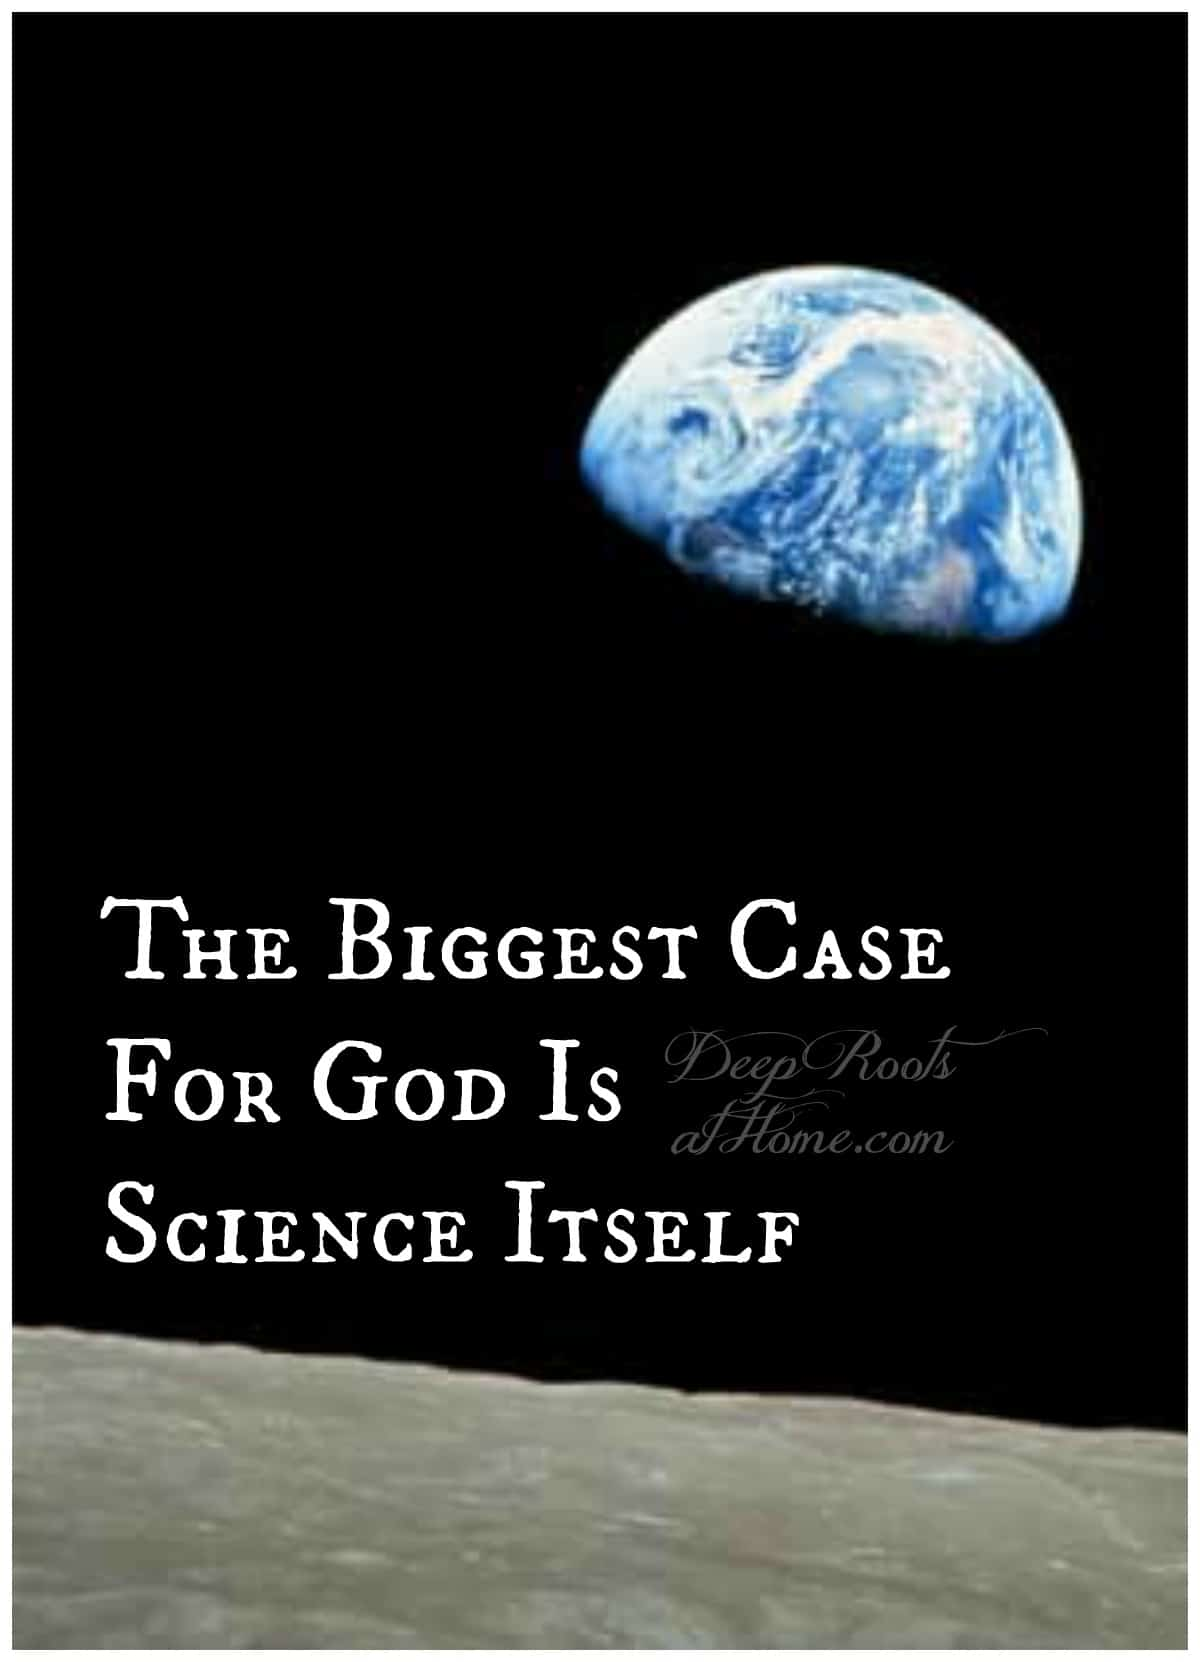 The Biggest Case for God: Science Itself. A NASA photo of Earthrise.